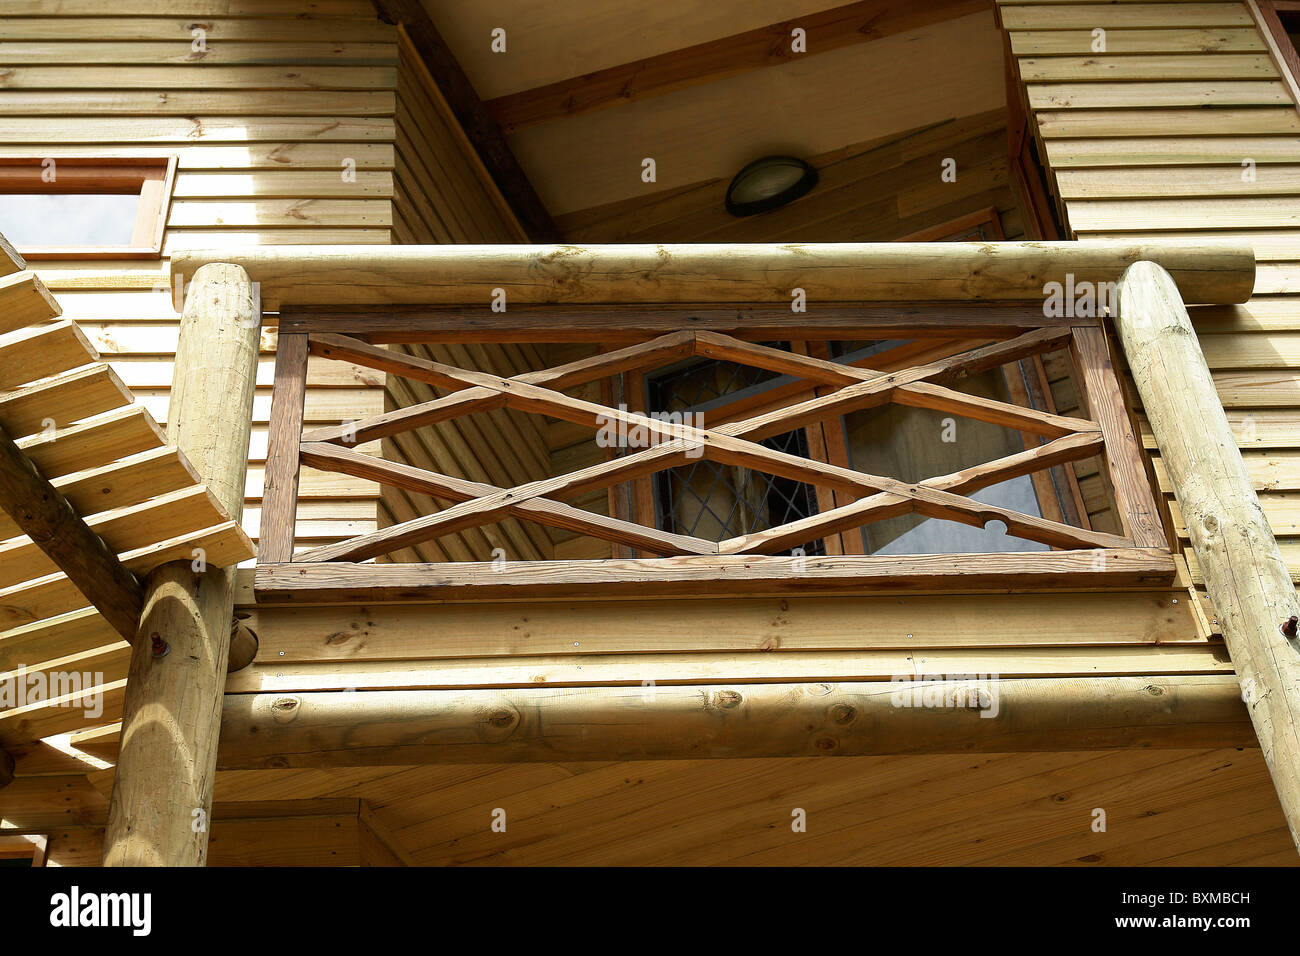 Balcony with handrail of wood, foreground to highlight the wood and the way. - Stock Image